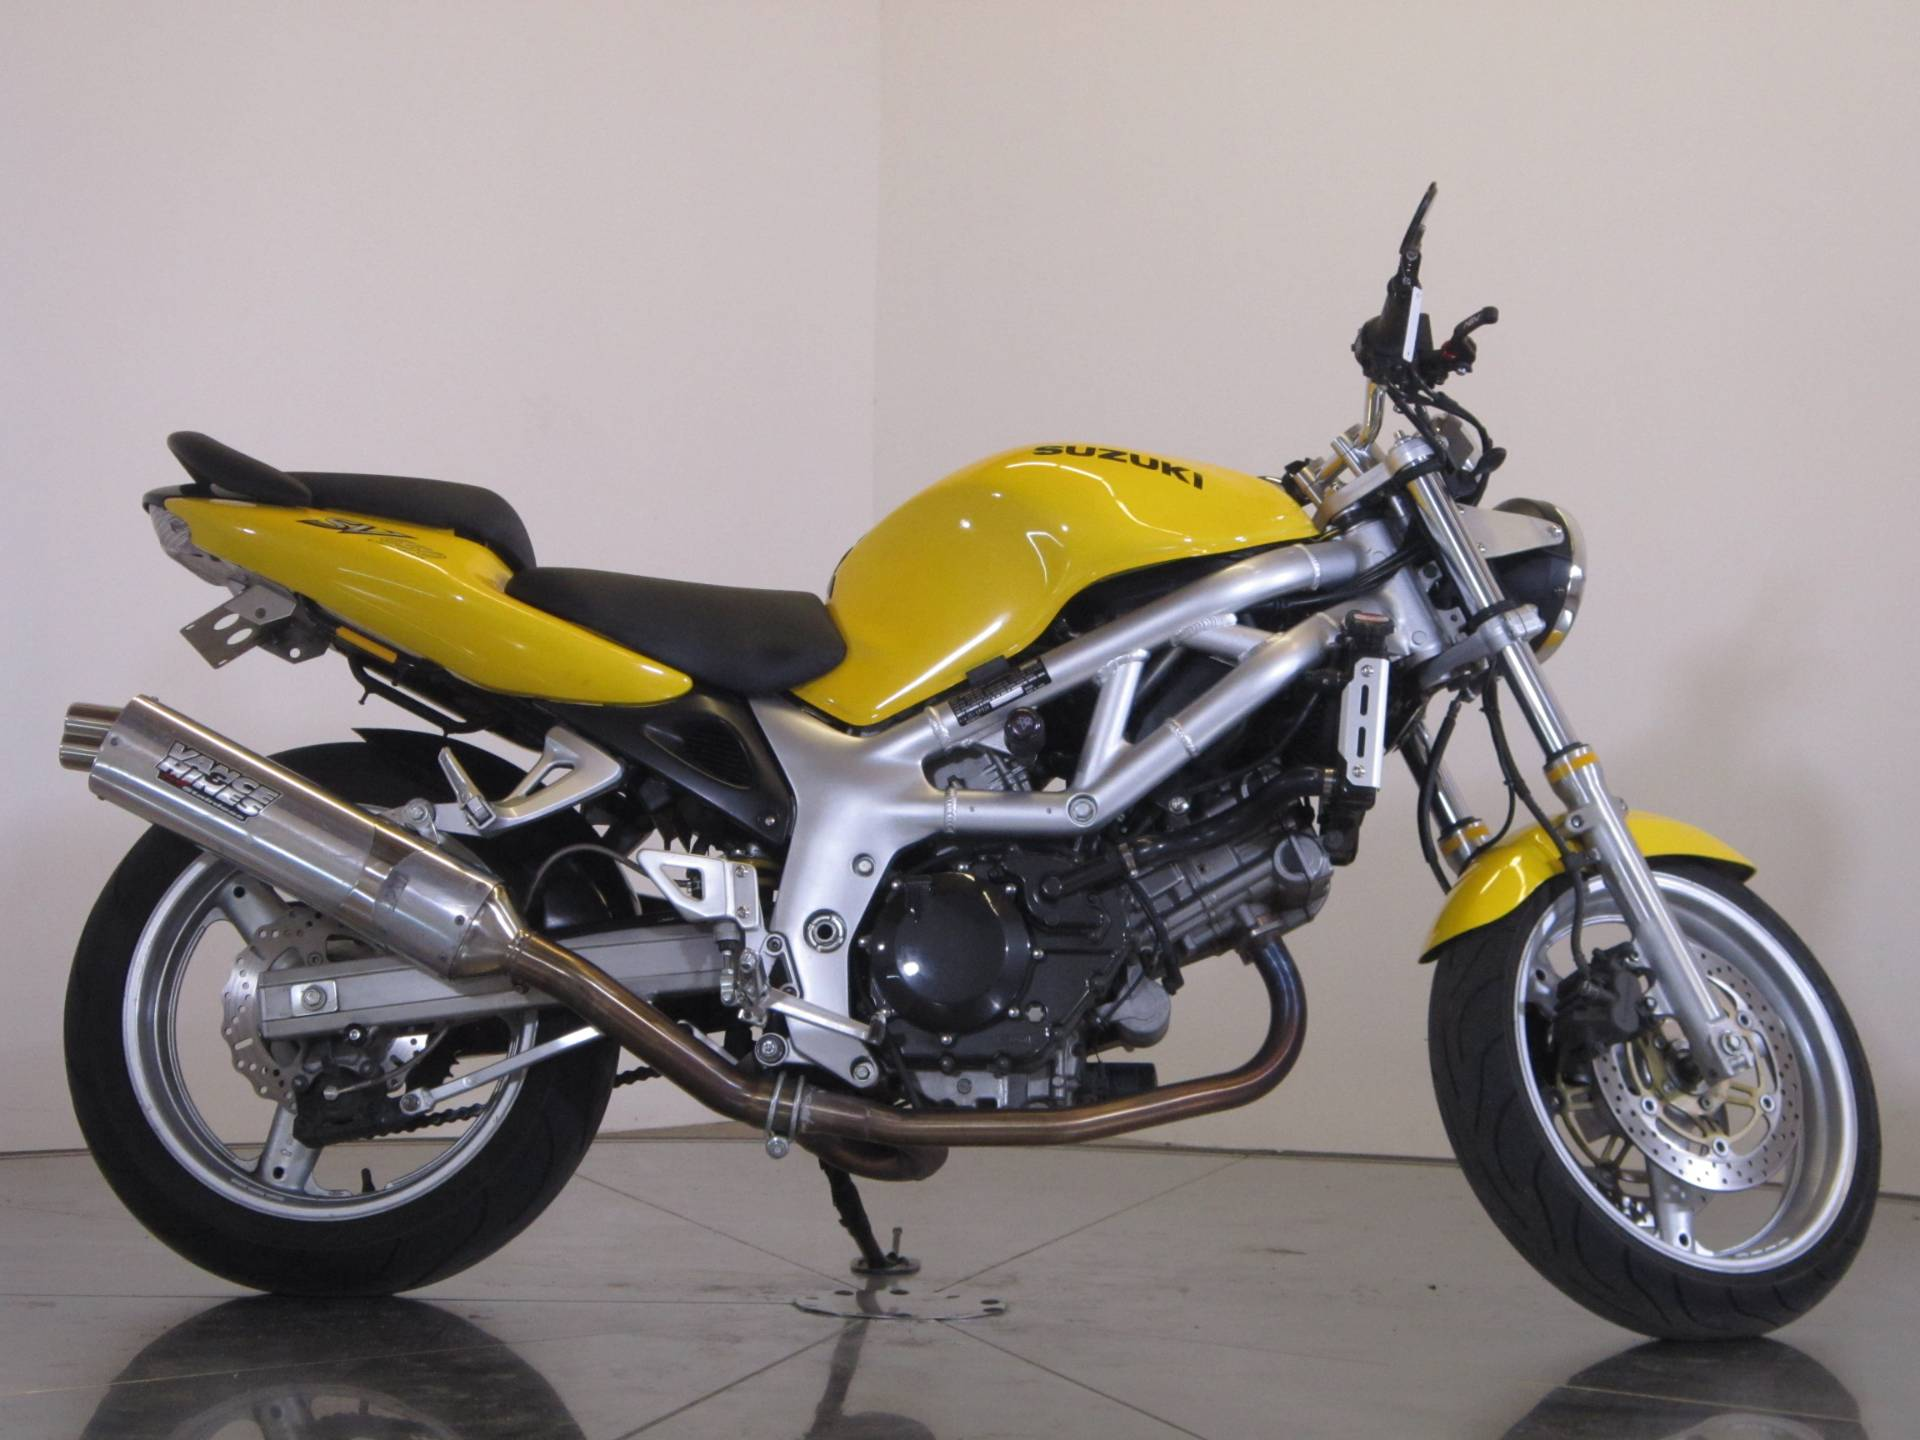 2002 Suzuki SV650 for sale 244810